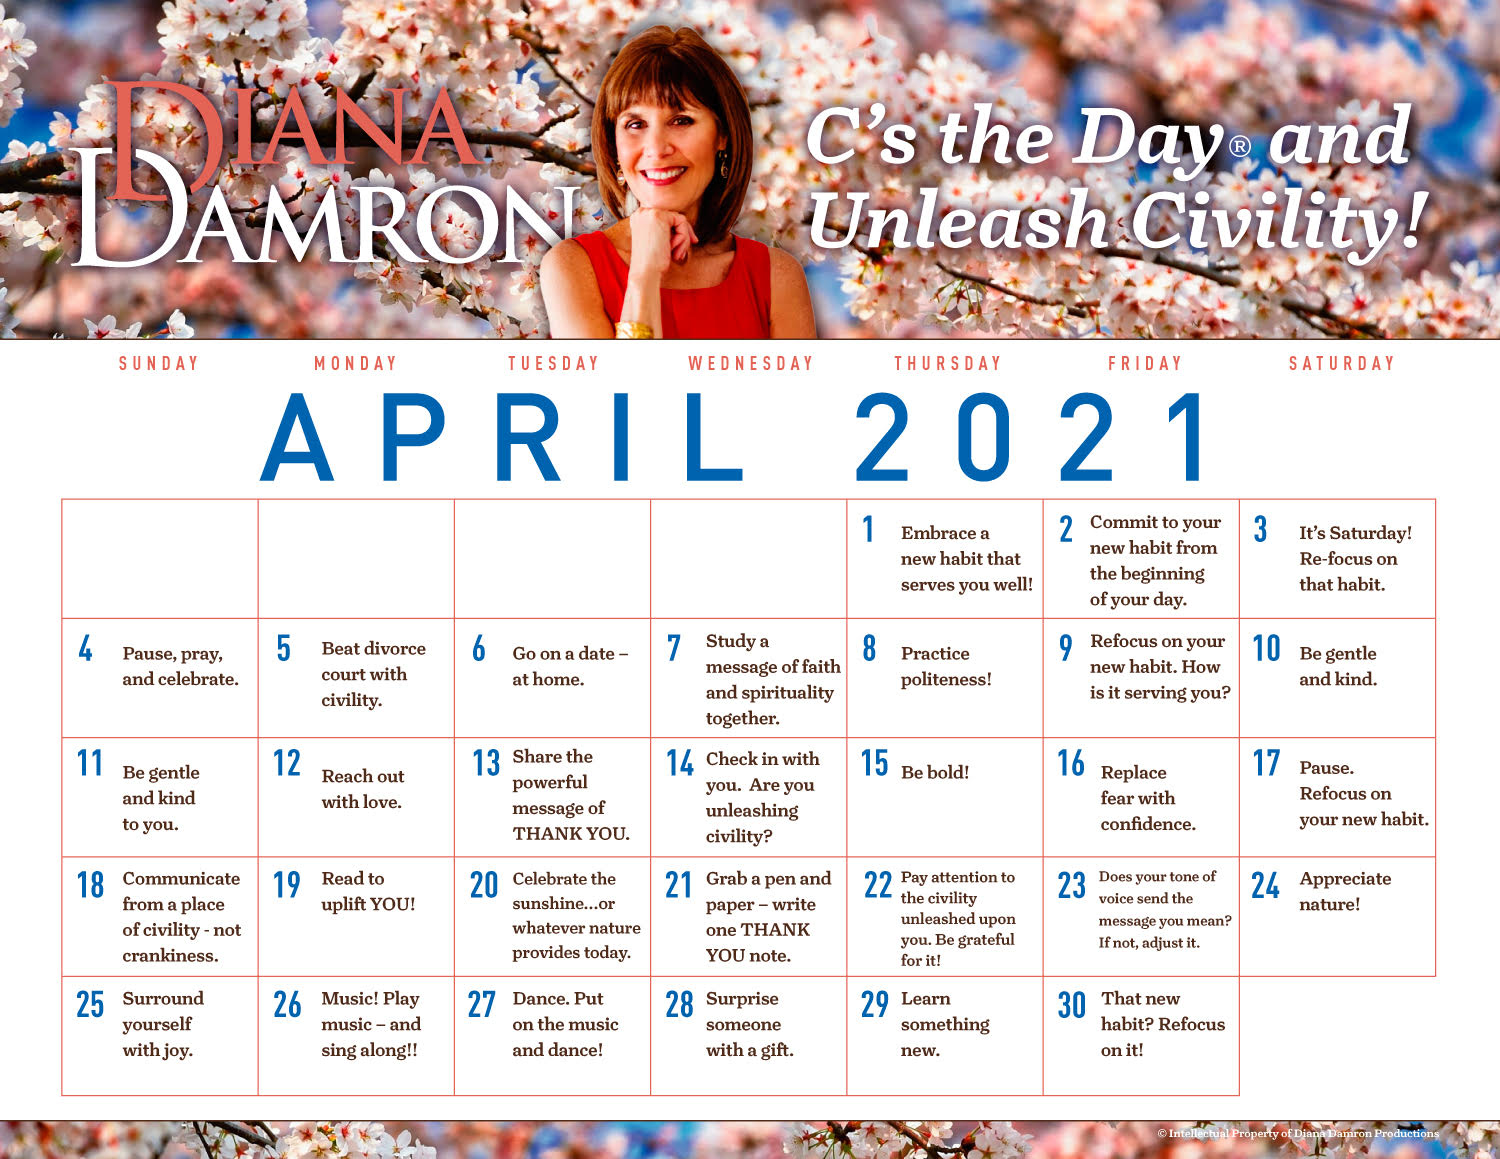 April 2021 Calendar by Diana Damron